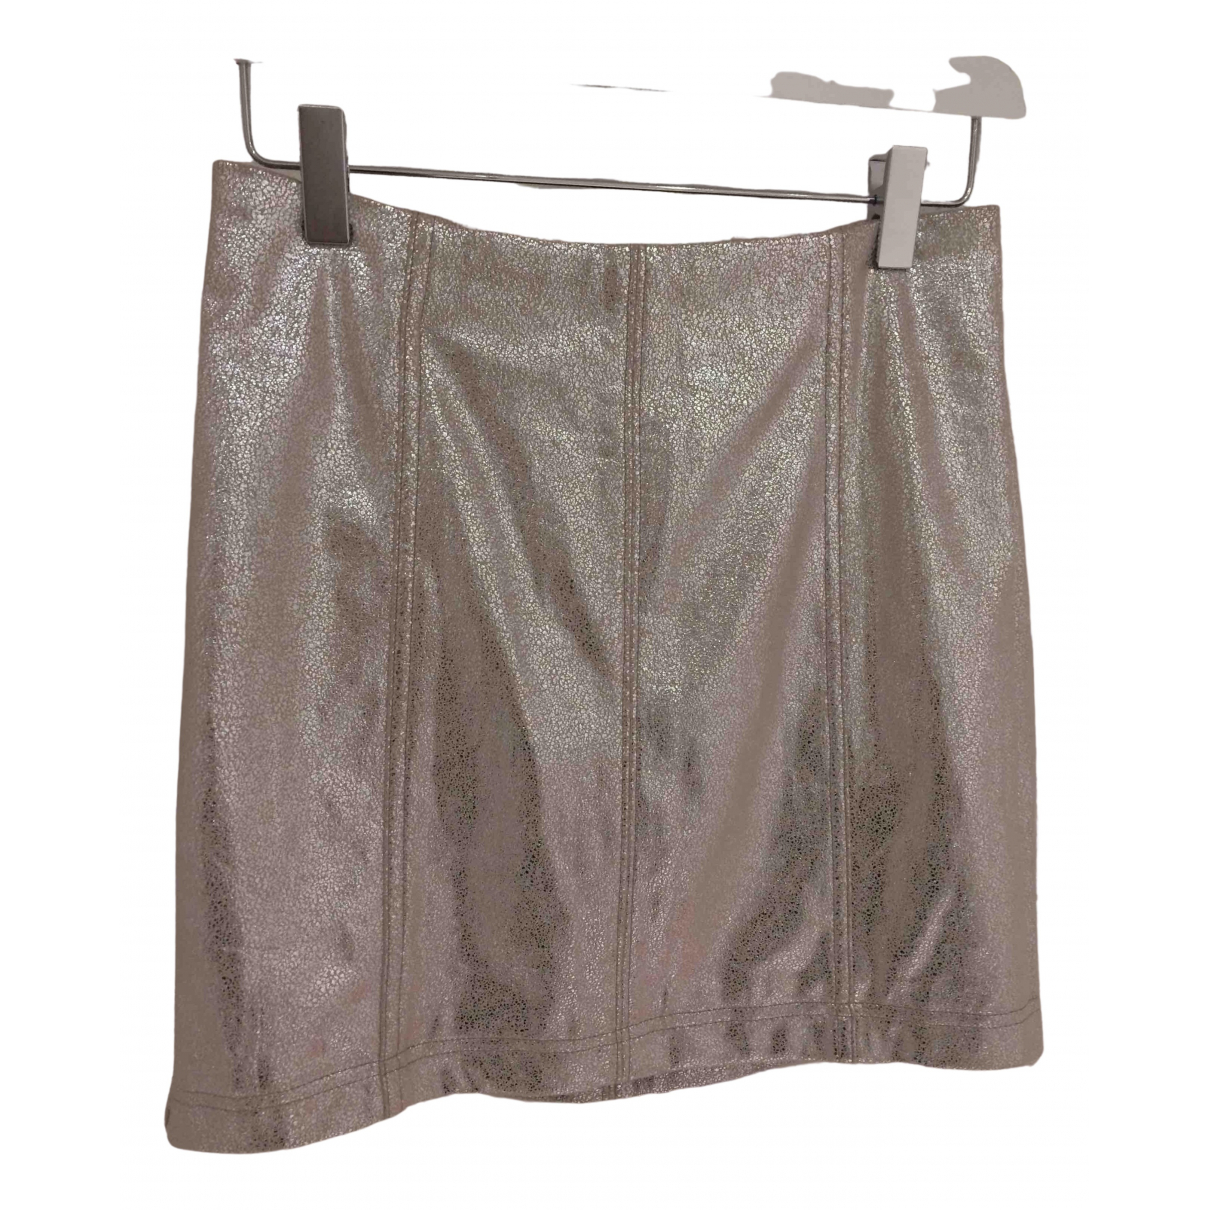 Free People N Metallic skirt for Women 2 US